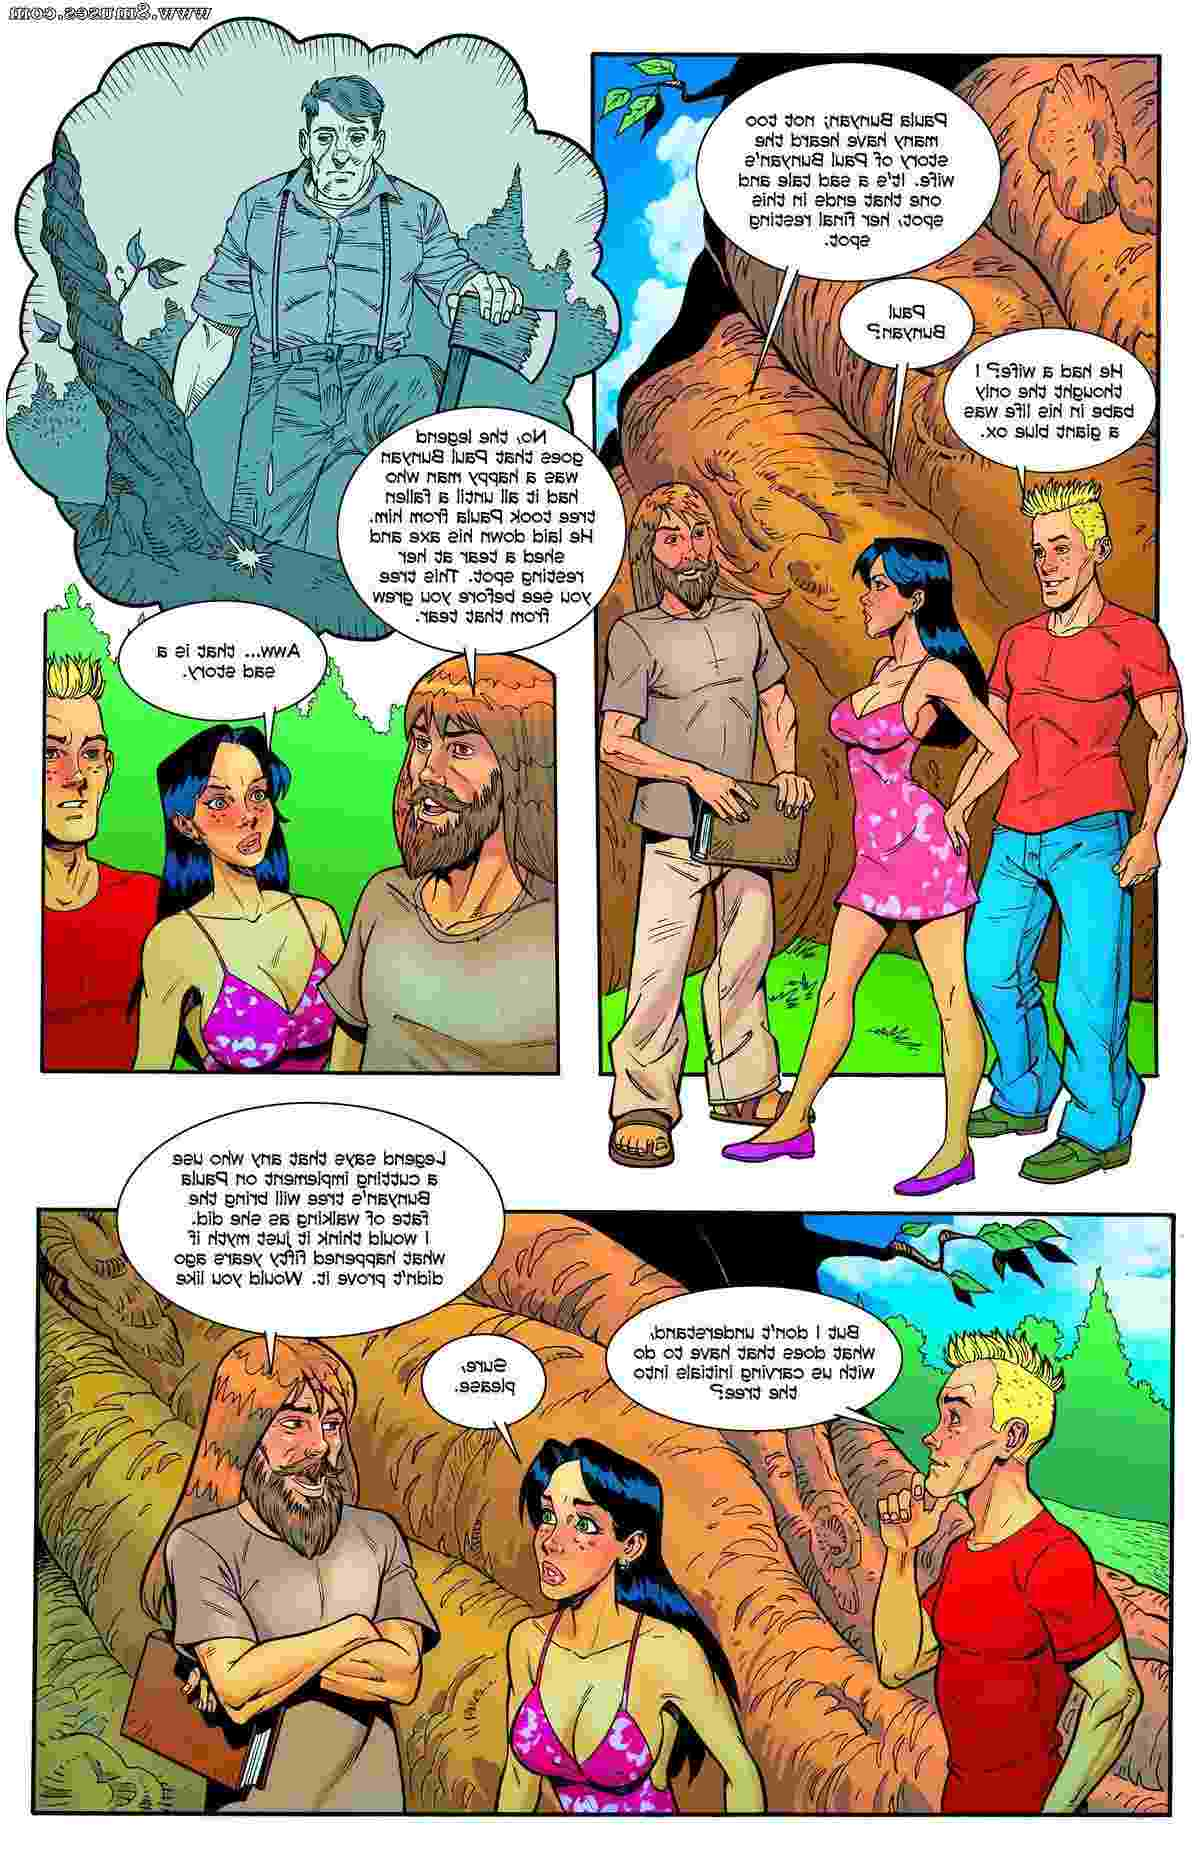 Giantess-Club-Comics/The-Legendary-Tree-Of-Paula-Bunyan The_Legendary_Tree_Of_Paula_Bunyan__8muses_-_Sex_and_Porn_Comics_8.jpg